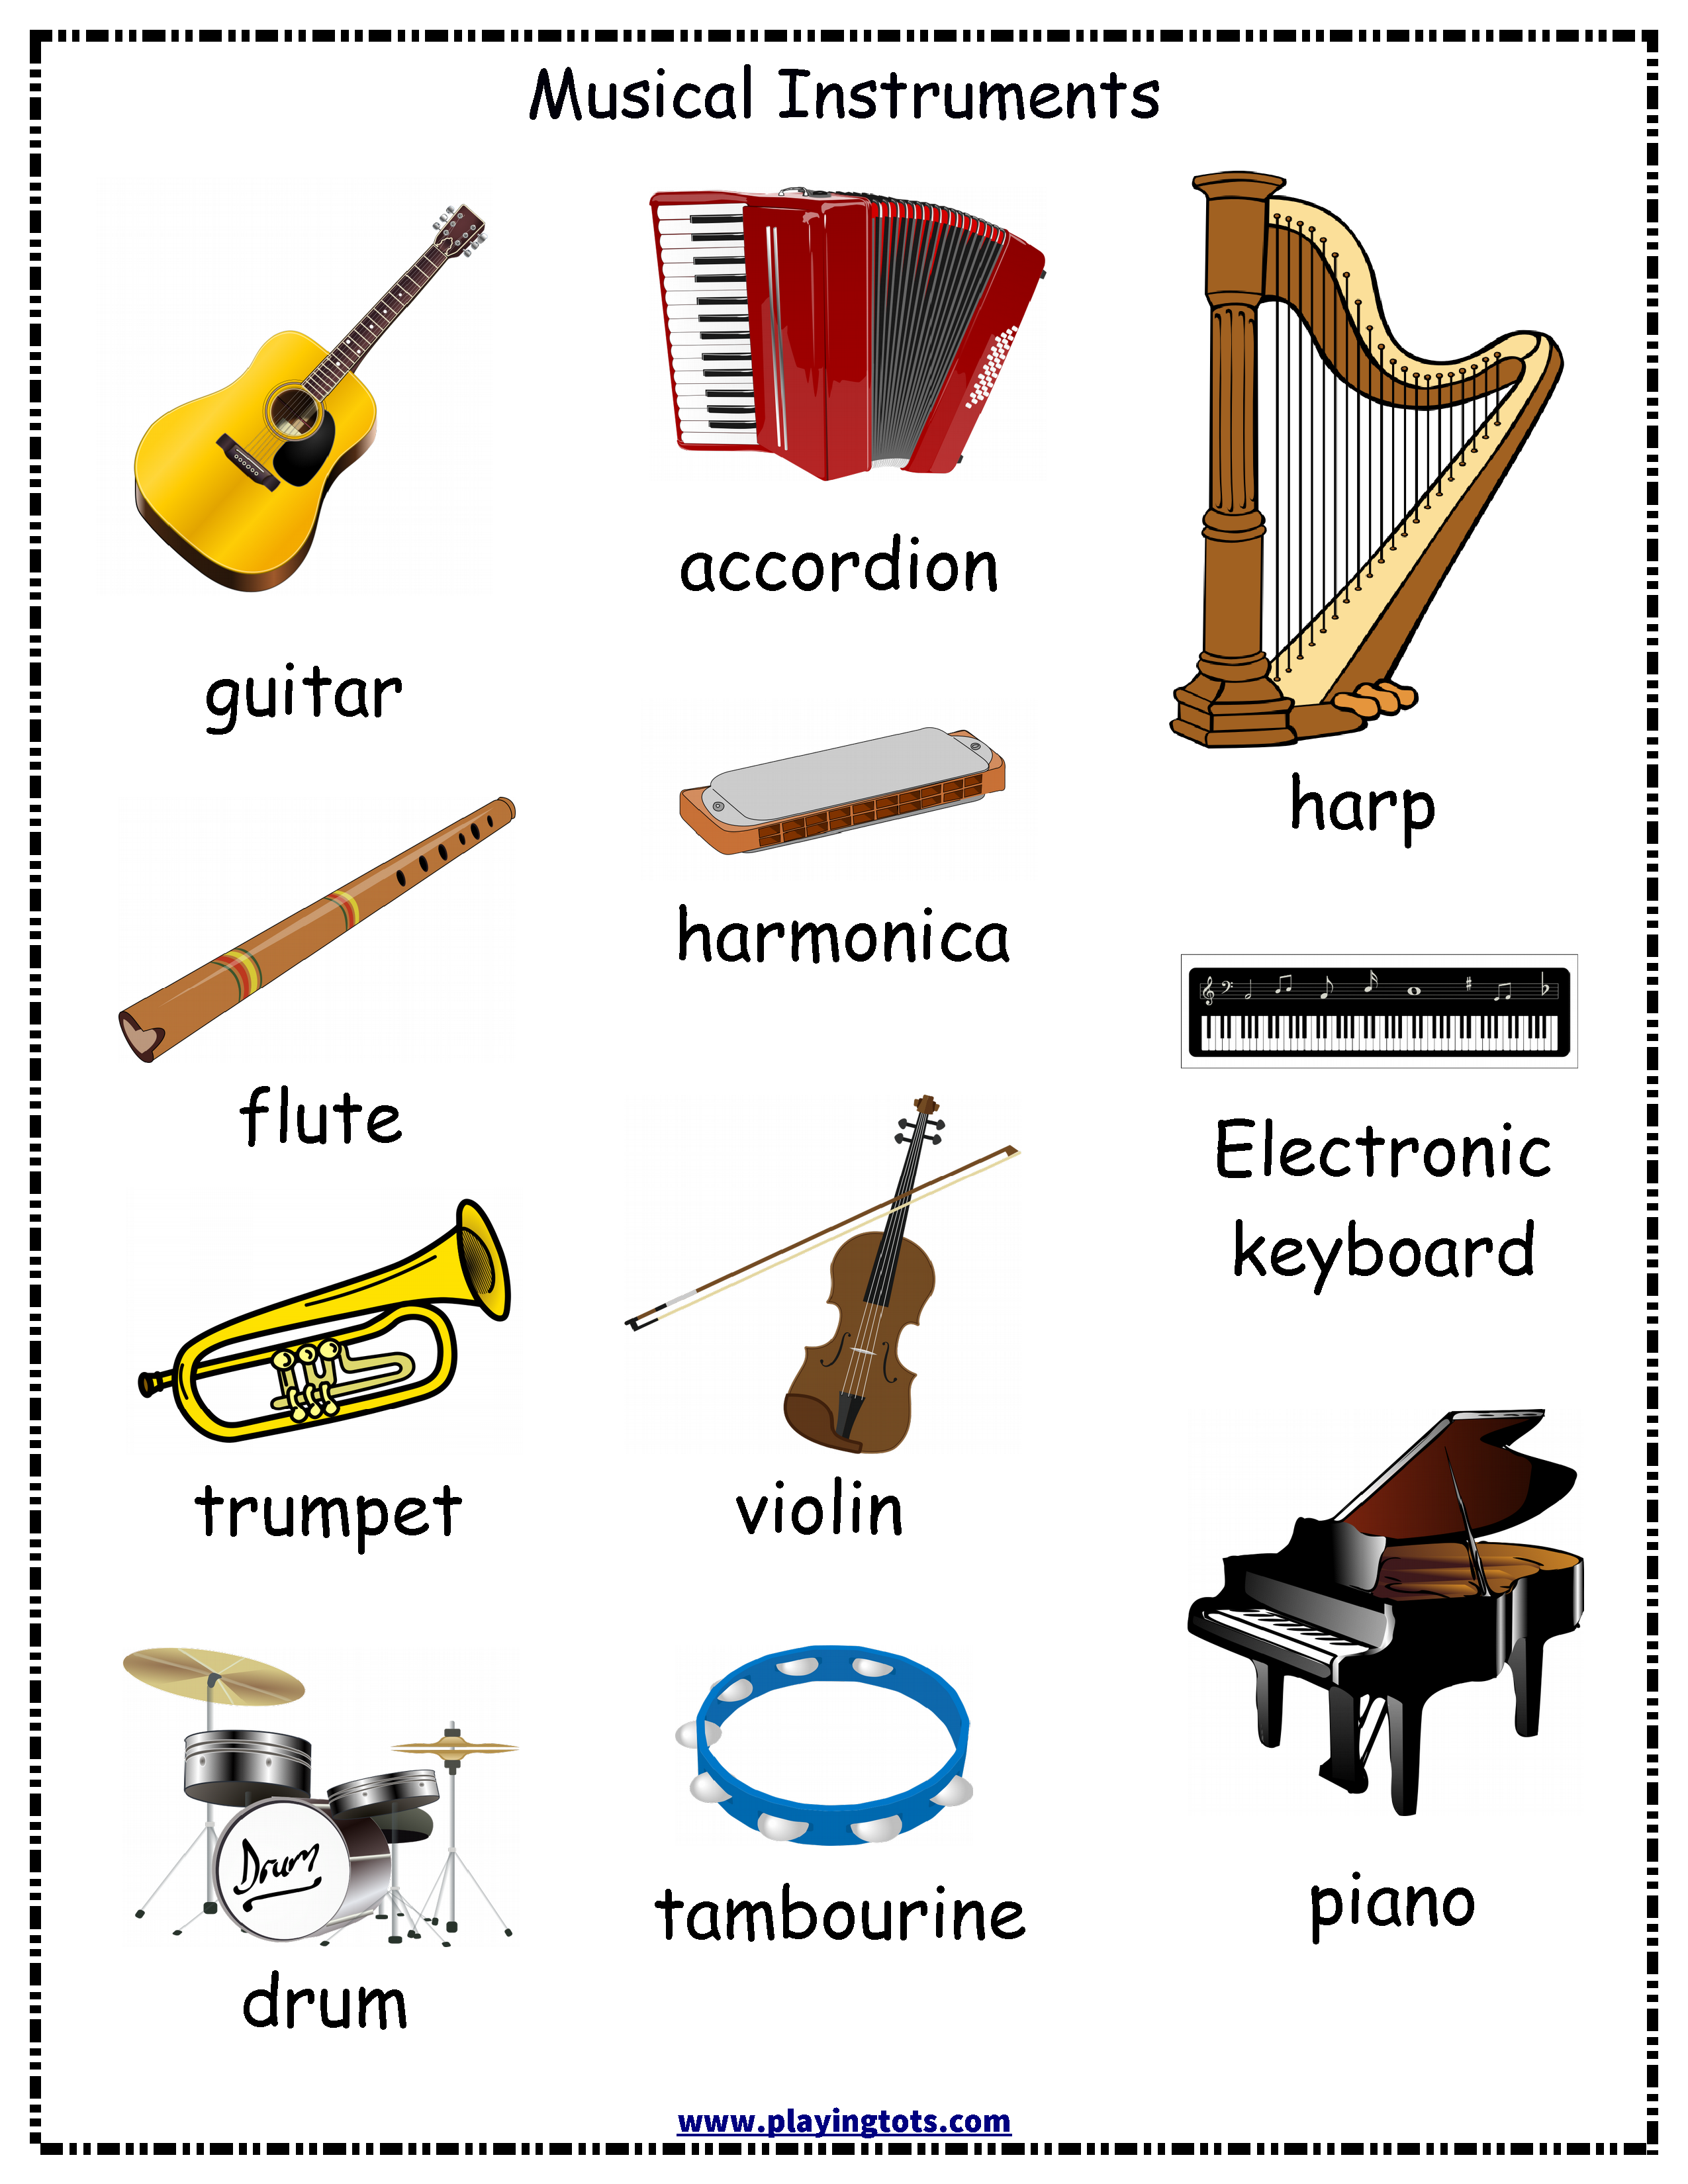 image regarding Printable Pictures of Musical Instruments identified as free of charge printable musical resources chart Homeschool